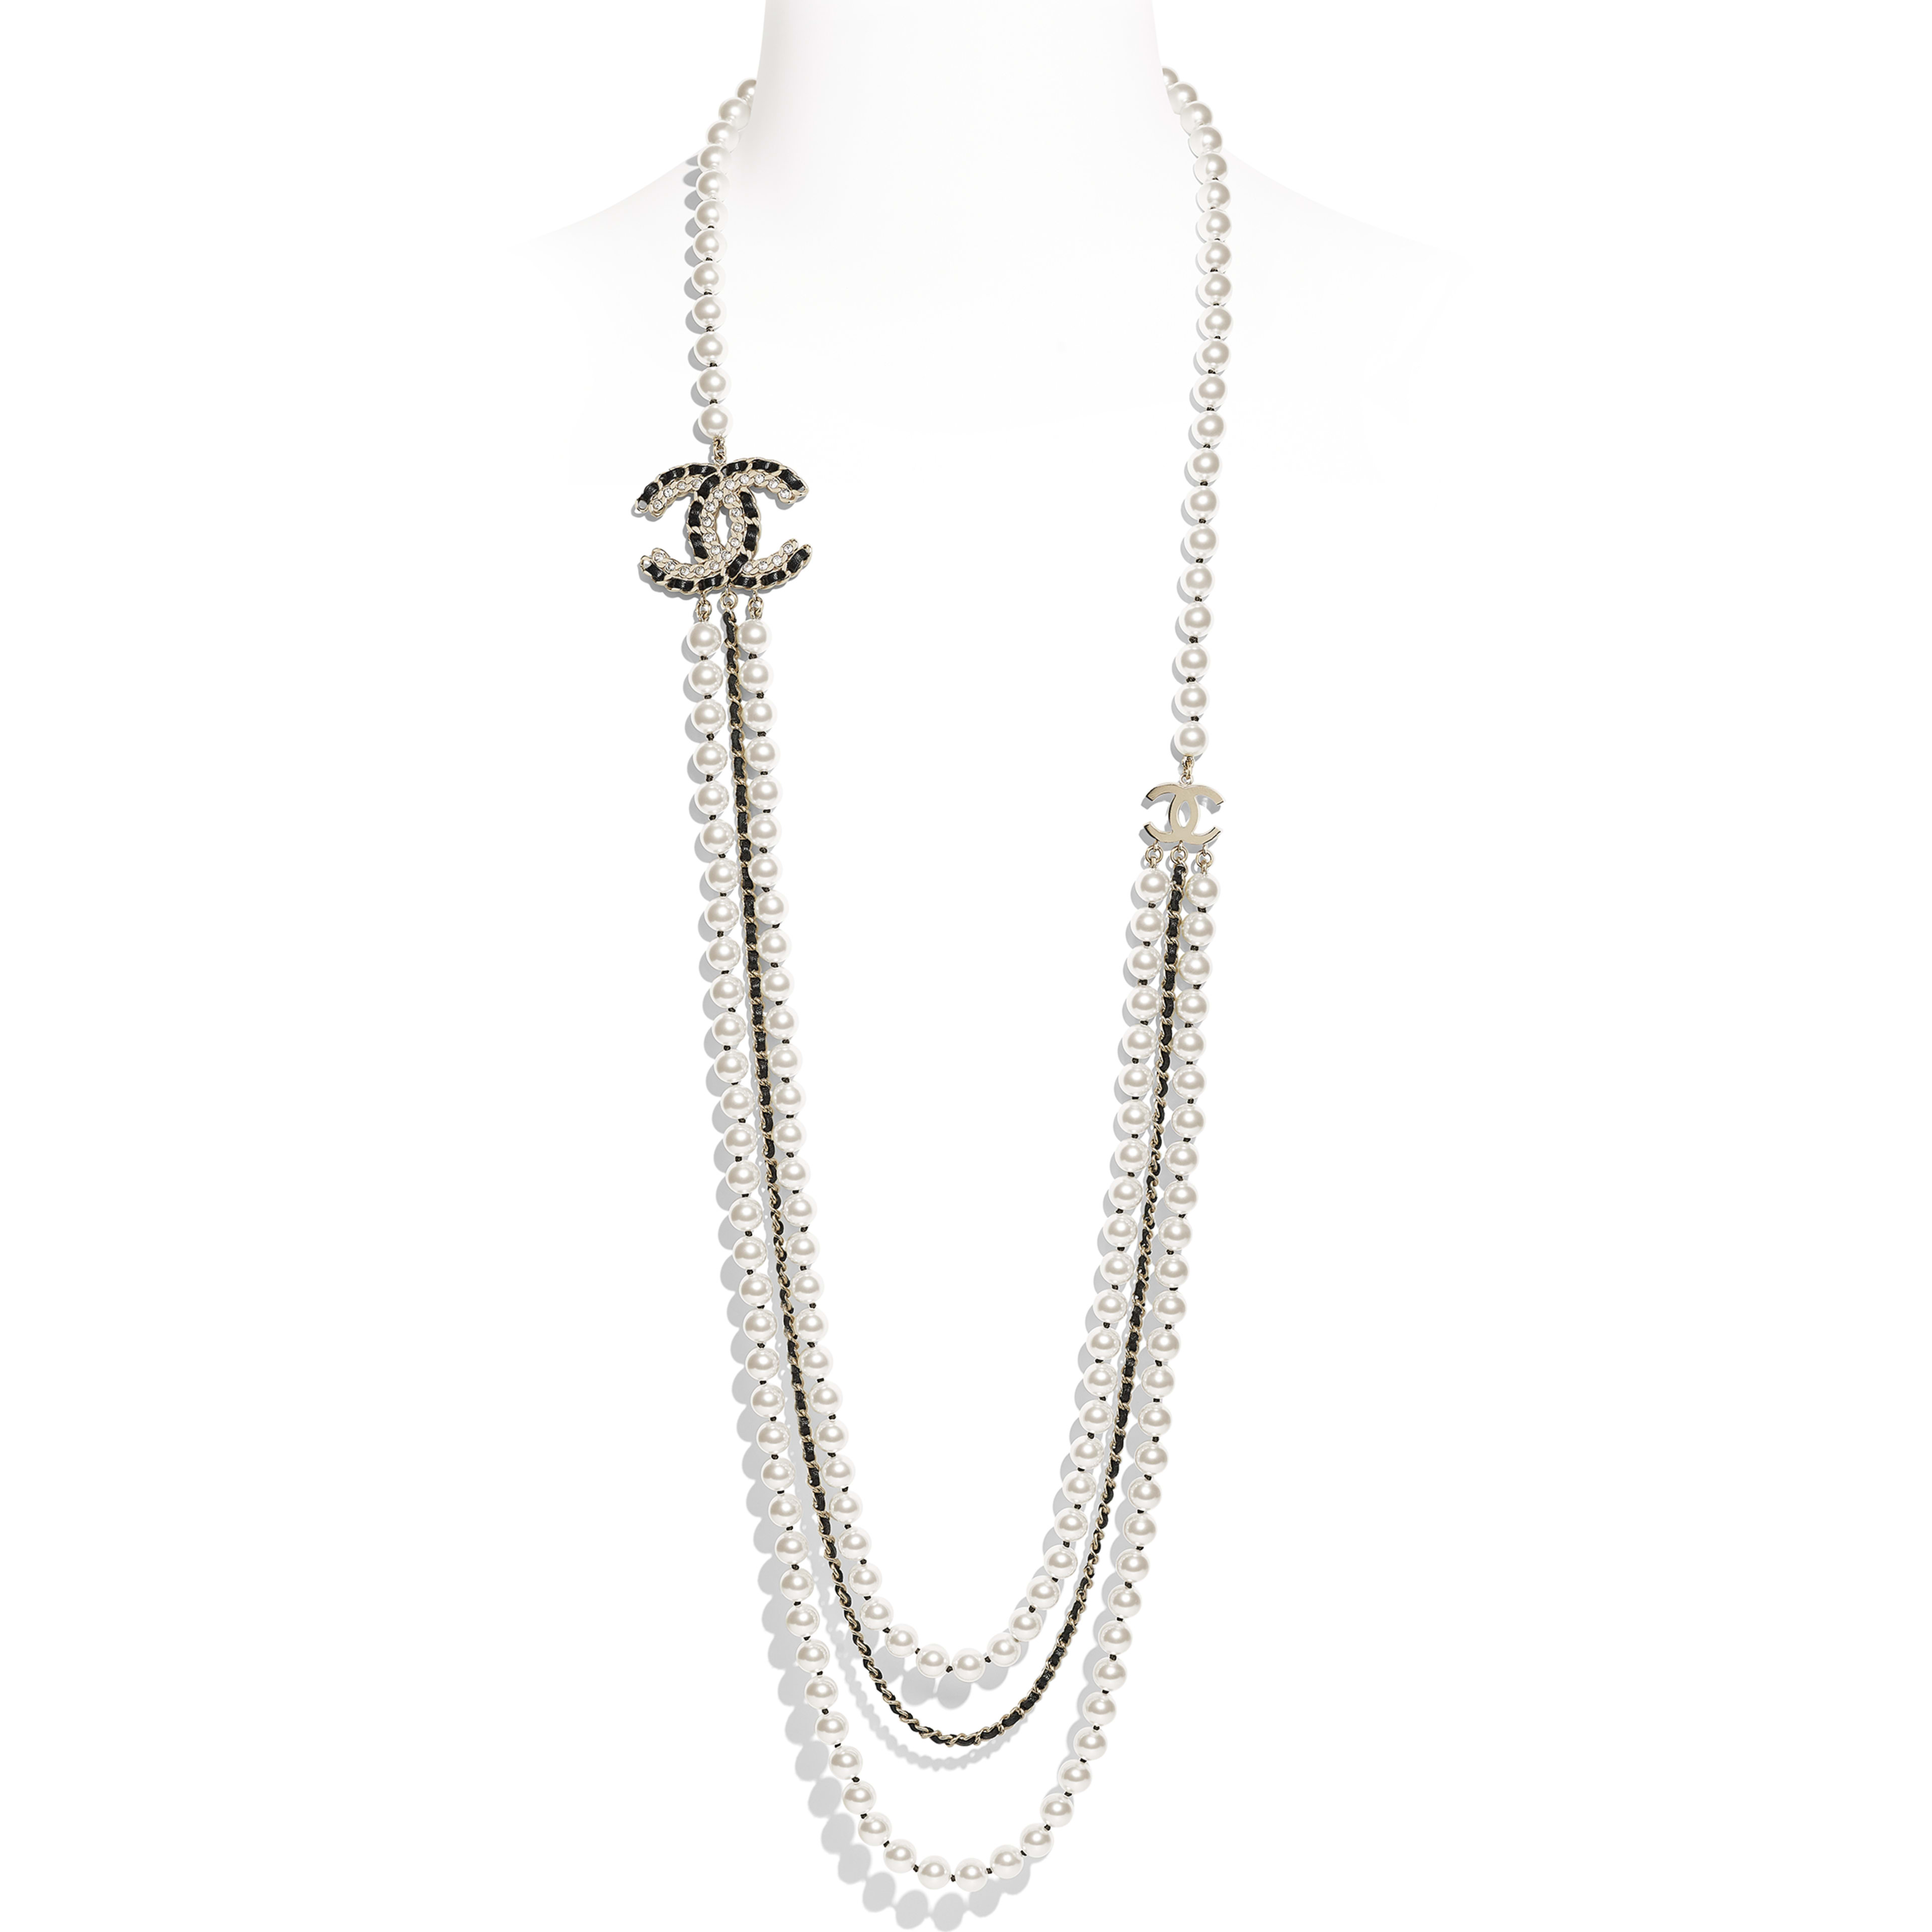 Long Necklace - Gold, Pearly White, Black & Crystal - Metal, Glass Pearls, Lambskin & Strass - Default view - see full sized version